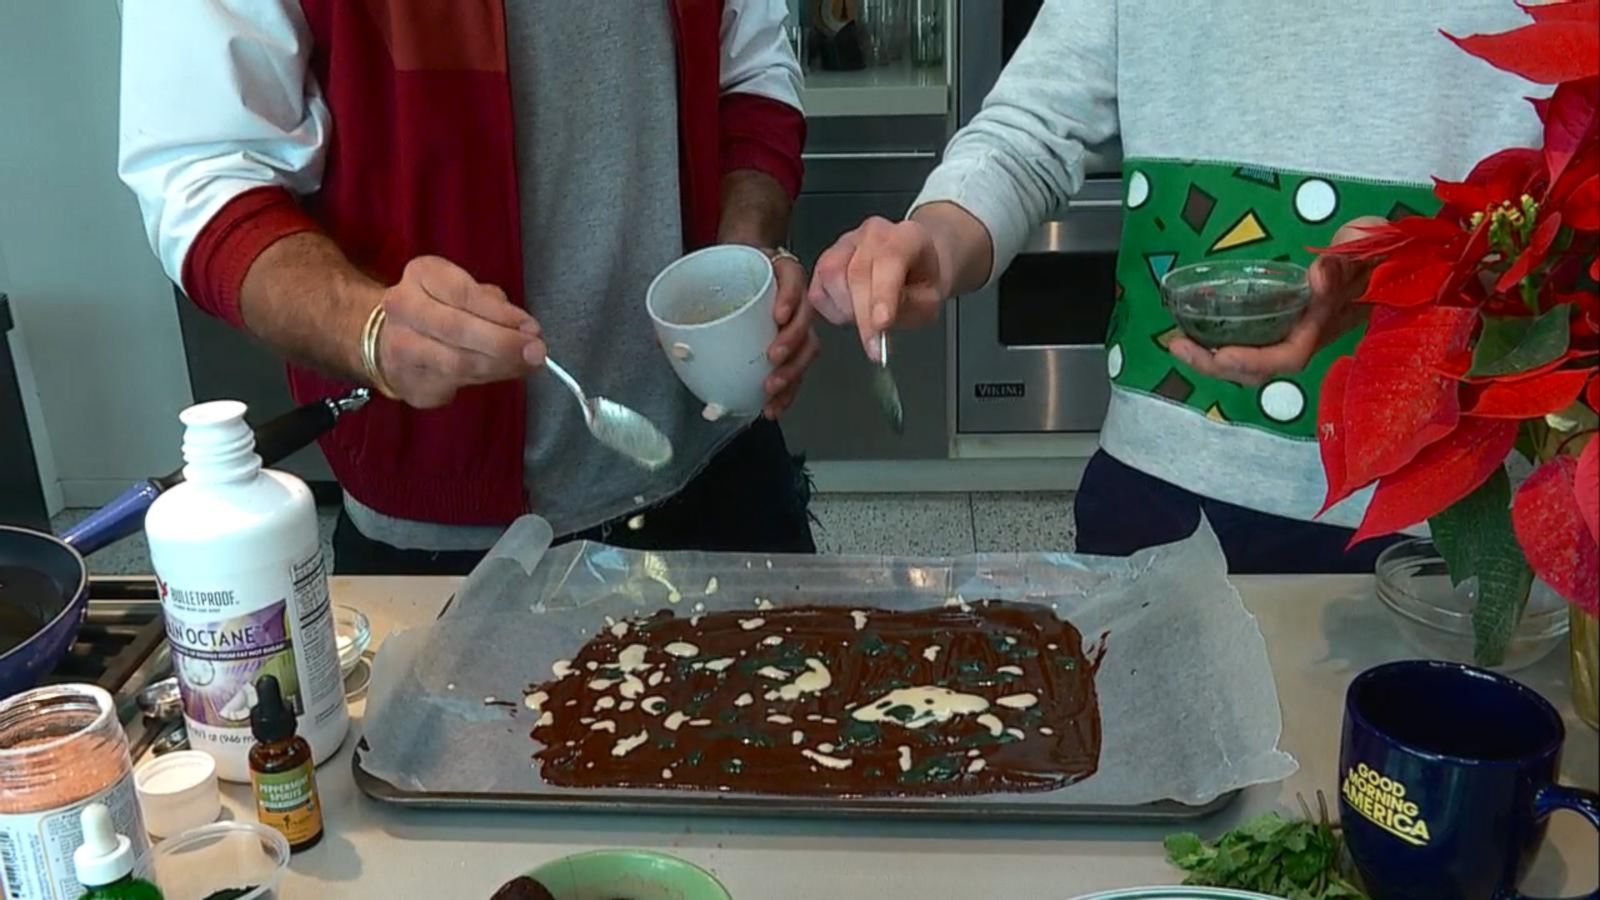 VIDEO: A Healthy Spin on Holiday Desserts